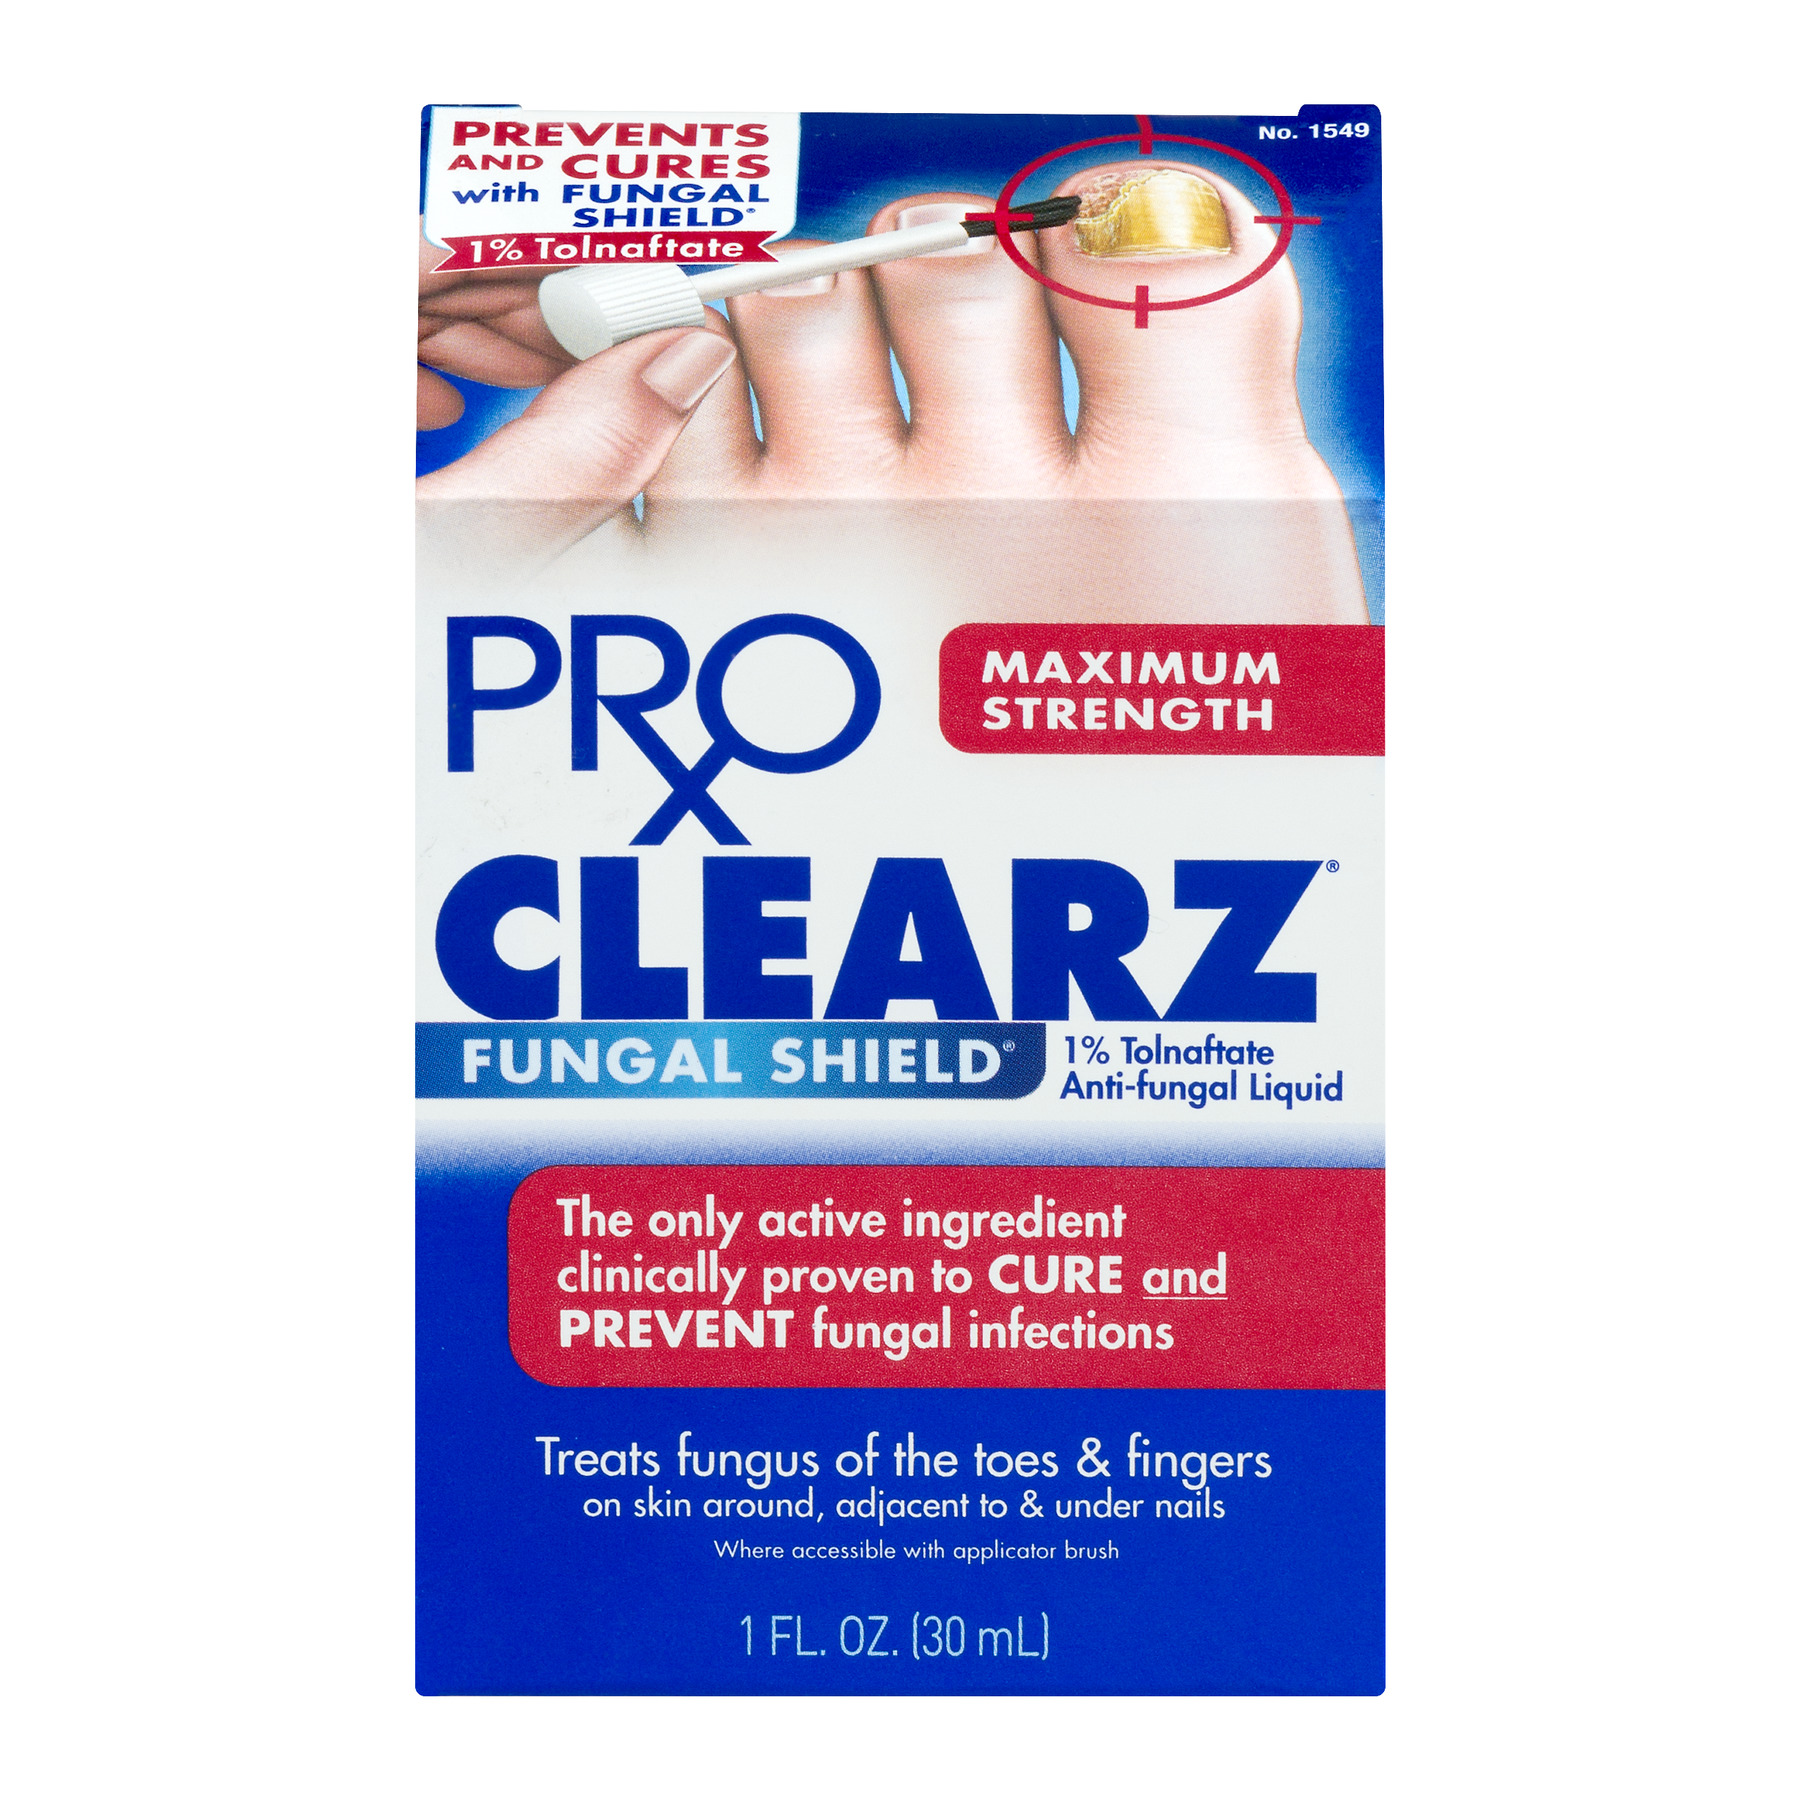 Profoot Pro Clearz Fungal Shield, 1.0 FL OZ